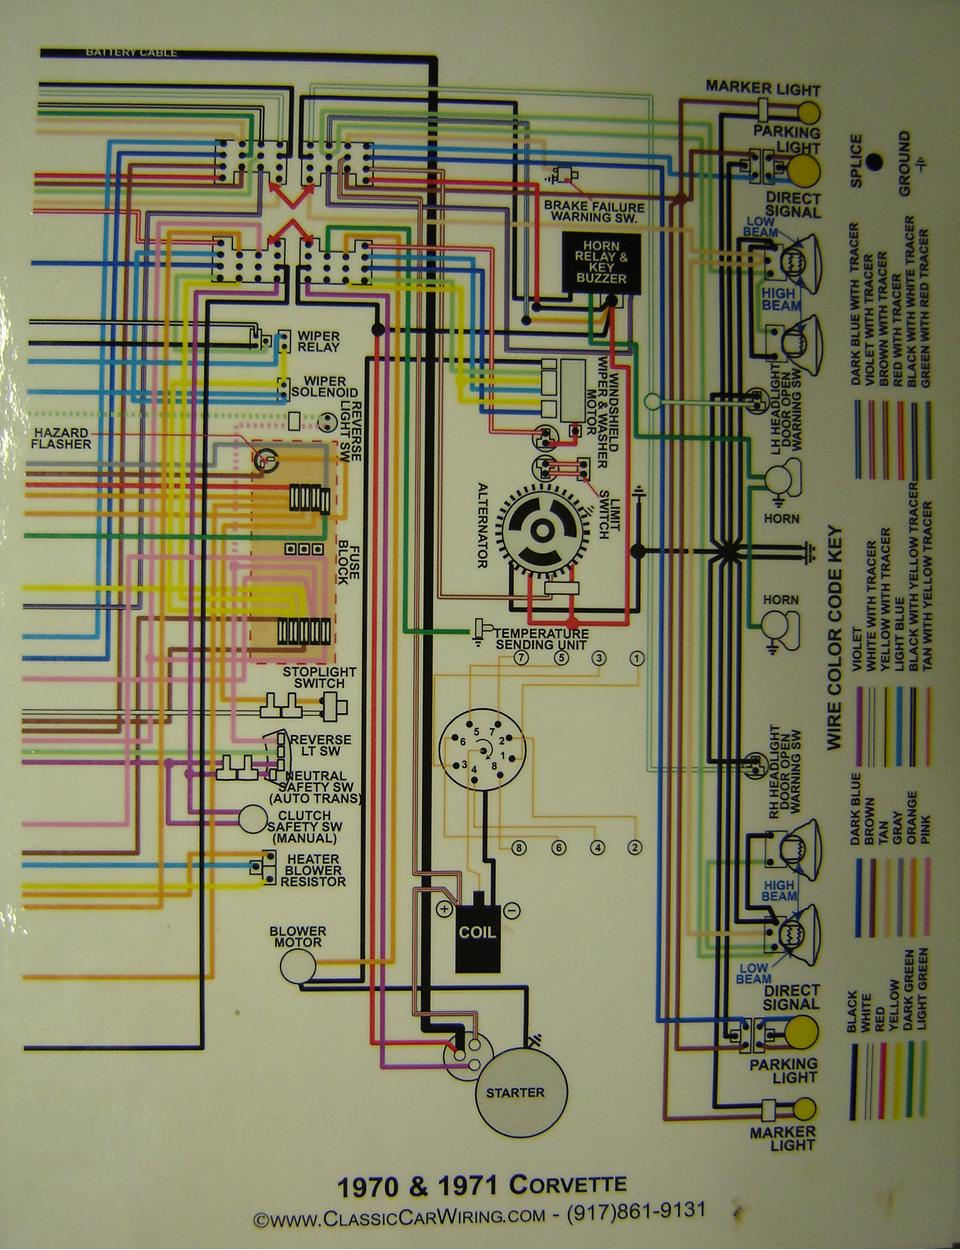 1970 71 corvette color wiring diagram B chevy diagrams 1968 corvette engine wiring harness at n-0.co